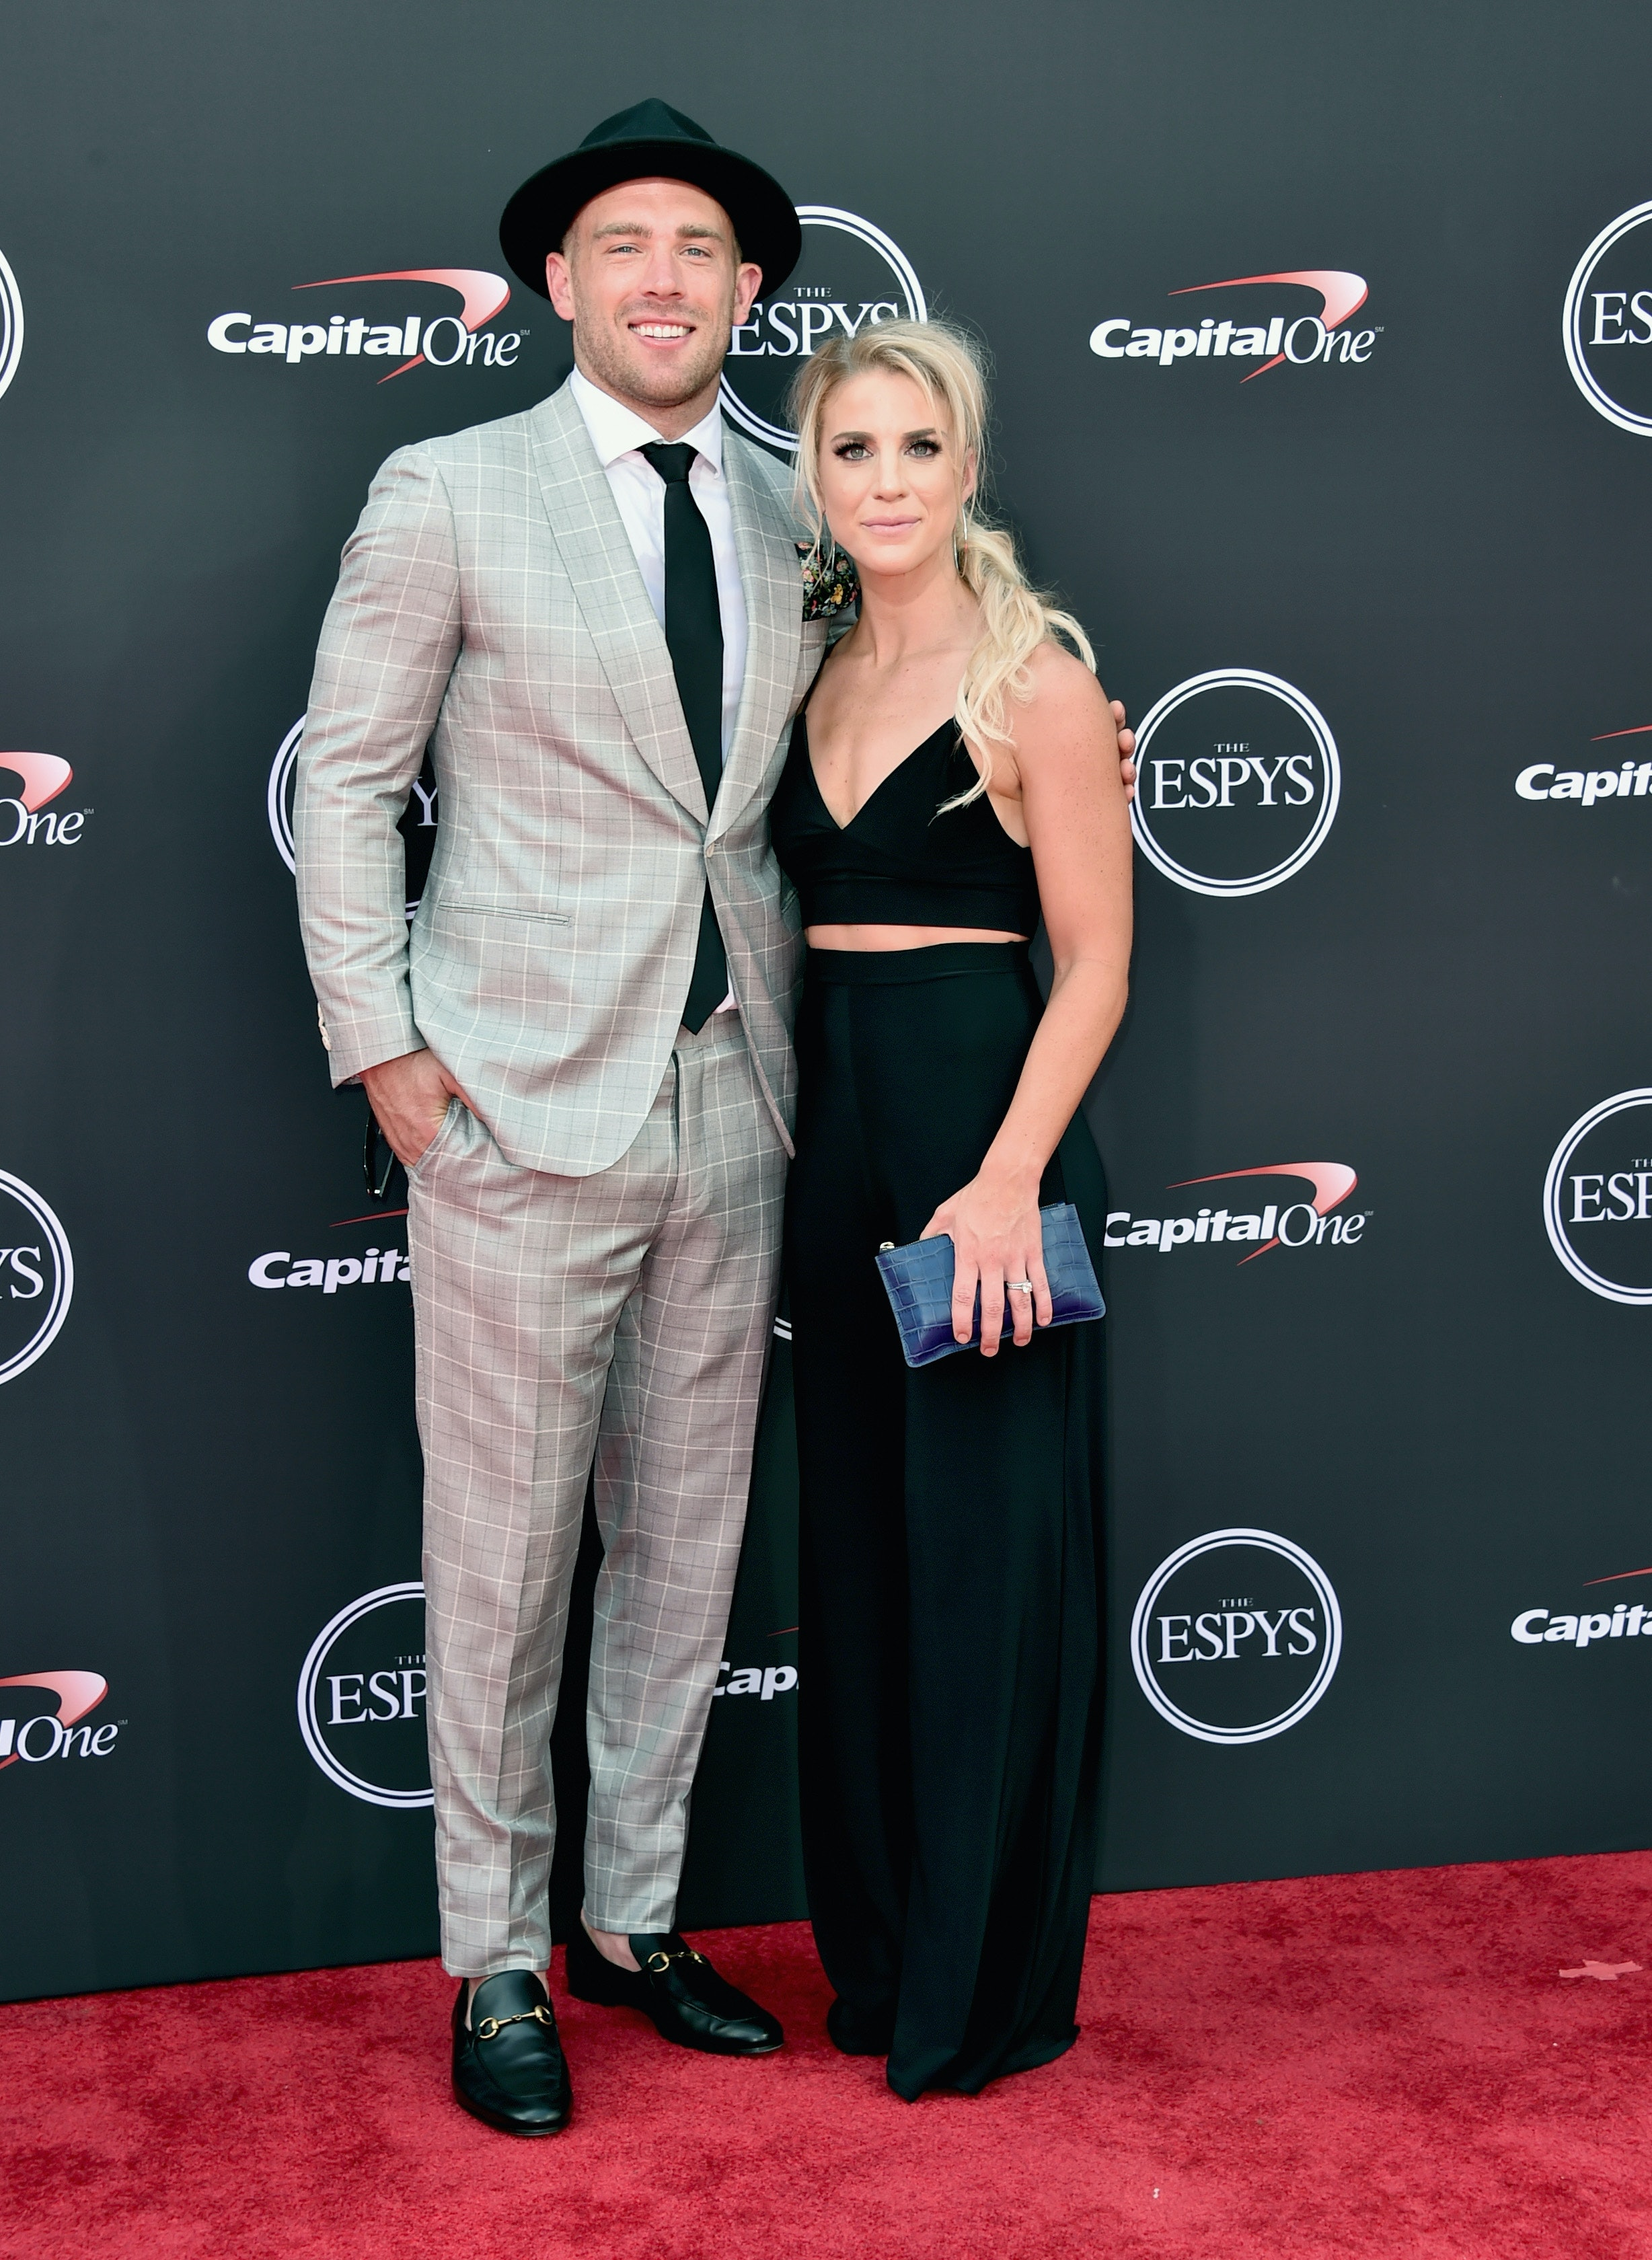 5 Famous Football Couples That Aren't Tom Brady Or Gisele